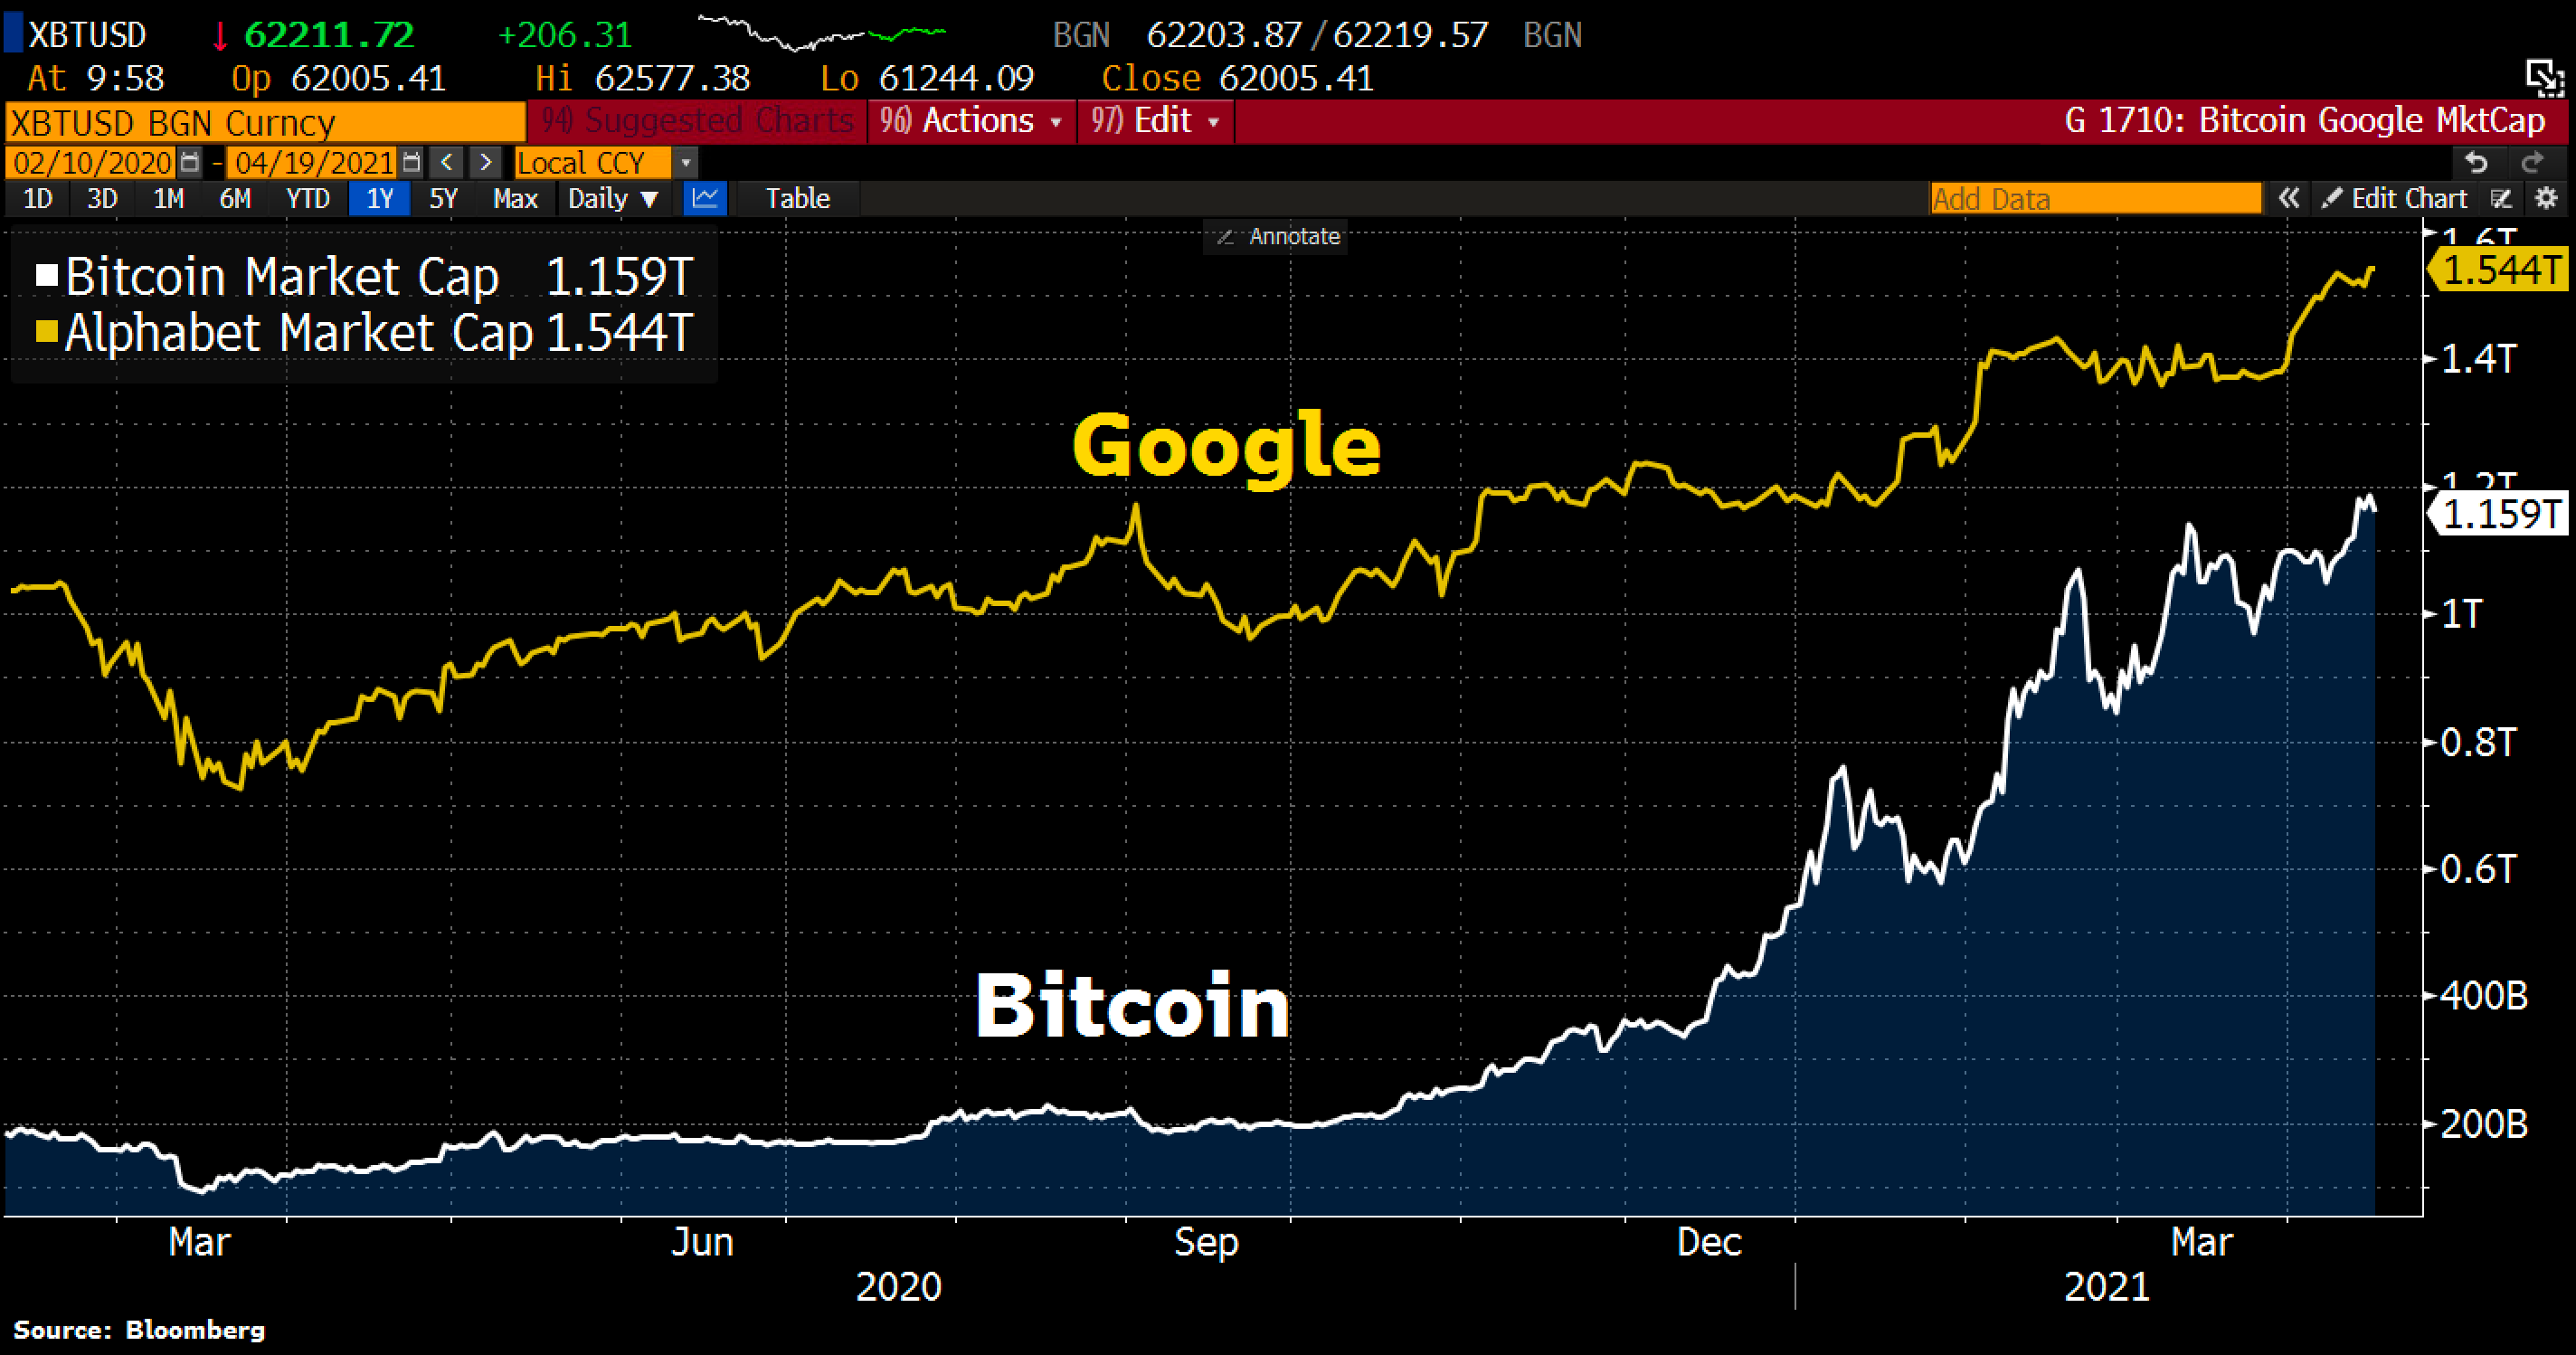 Is Bitcoin becoming the Google of crypto as BTC market